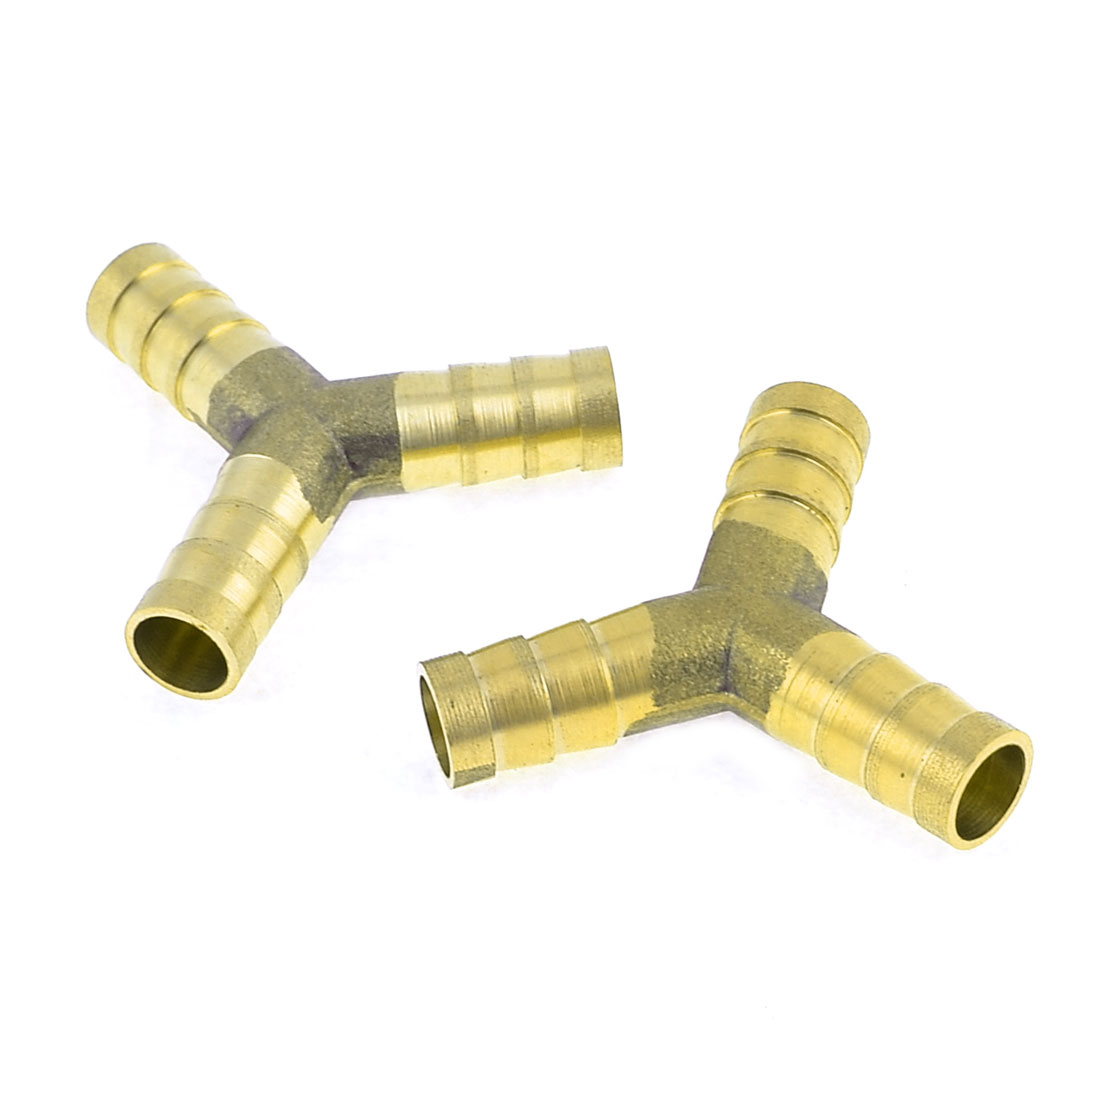 2 Pcs Gold Tone Metal Tri Way Fuel Gas Hose Joiner Connector